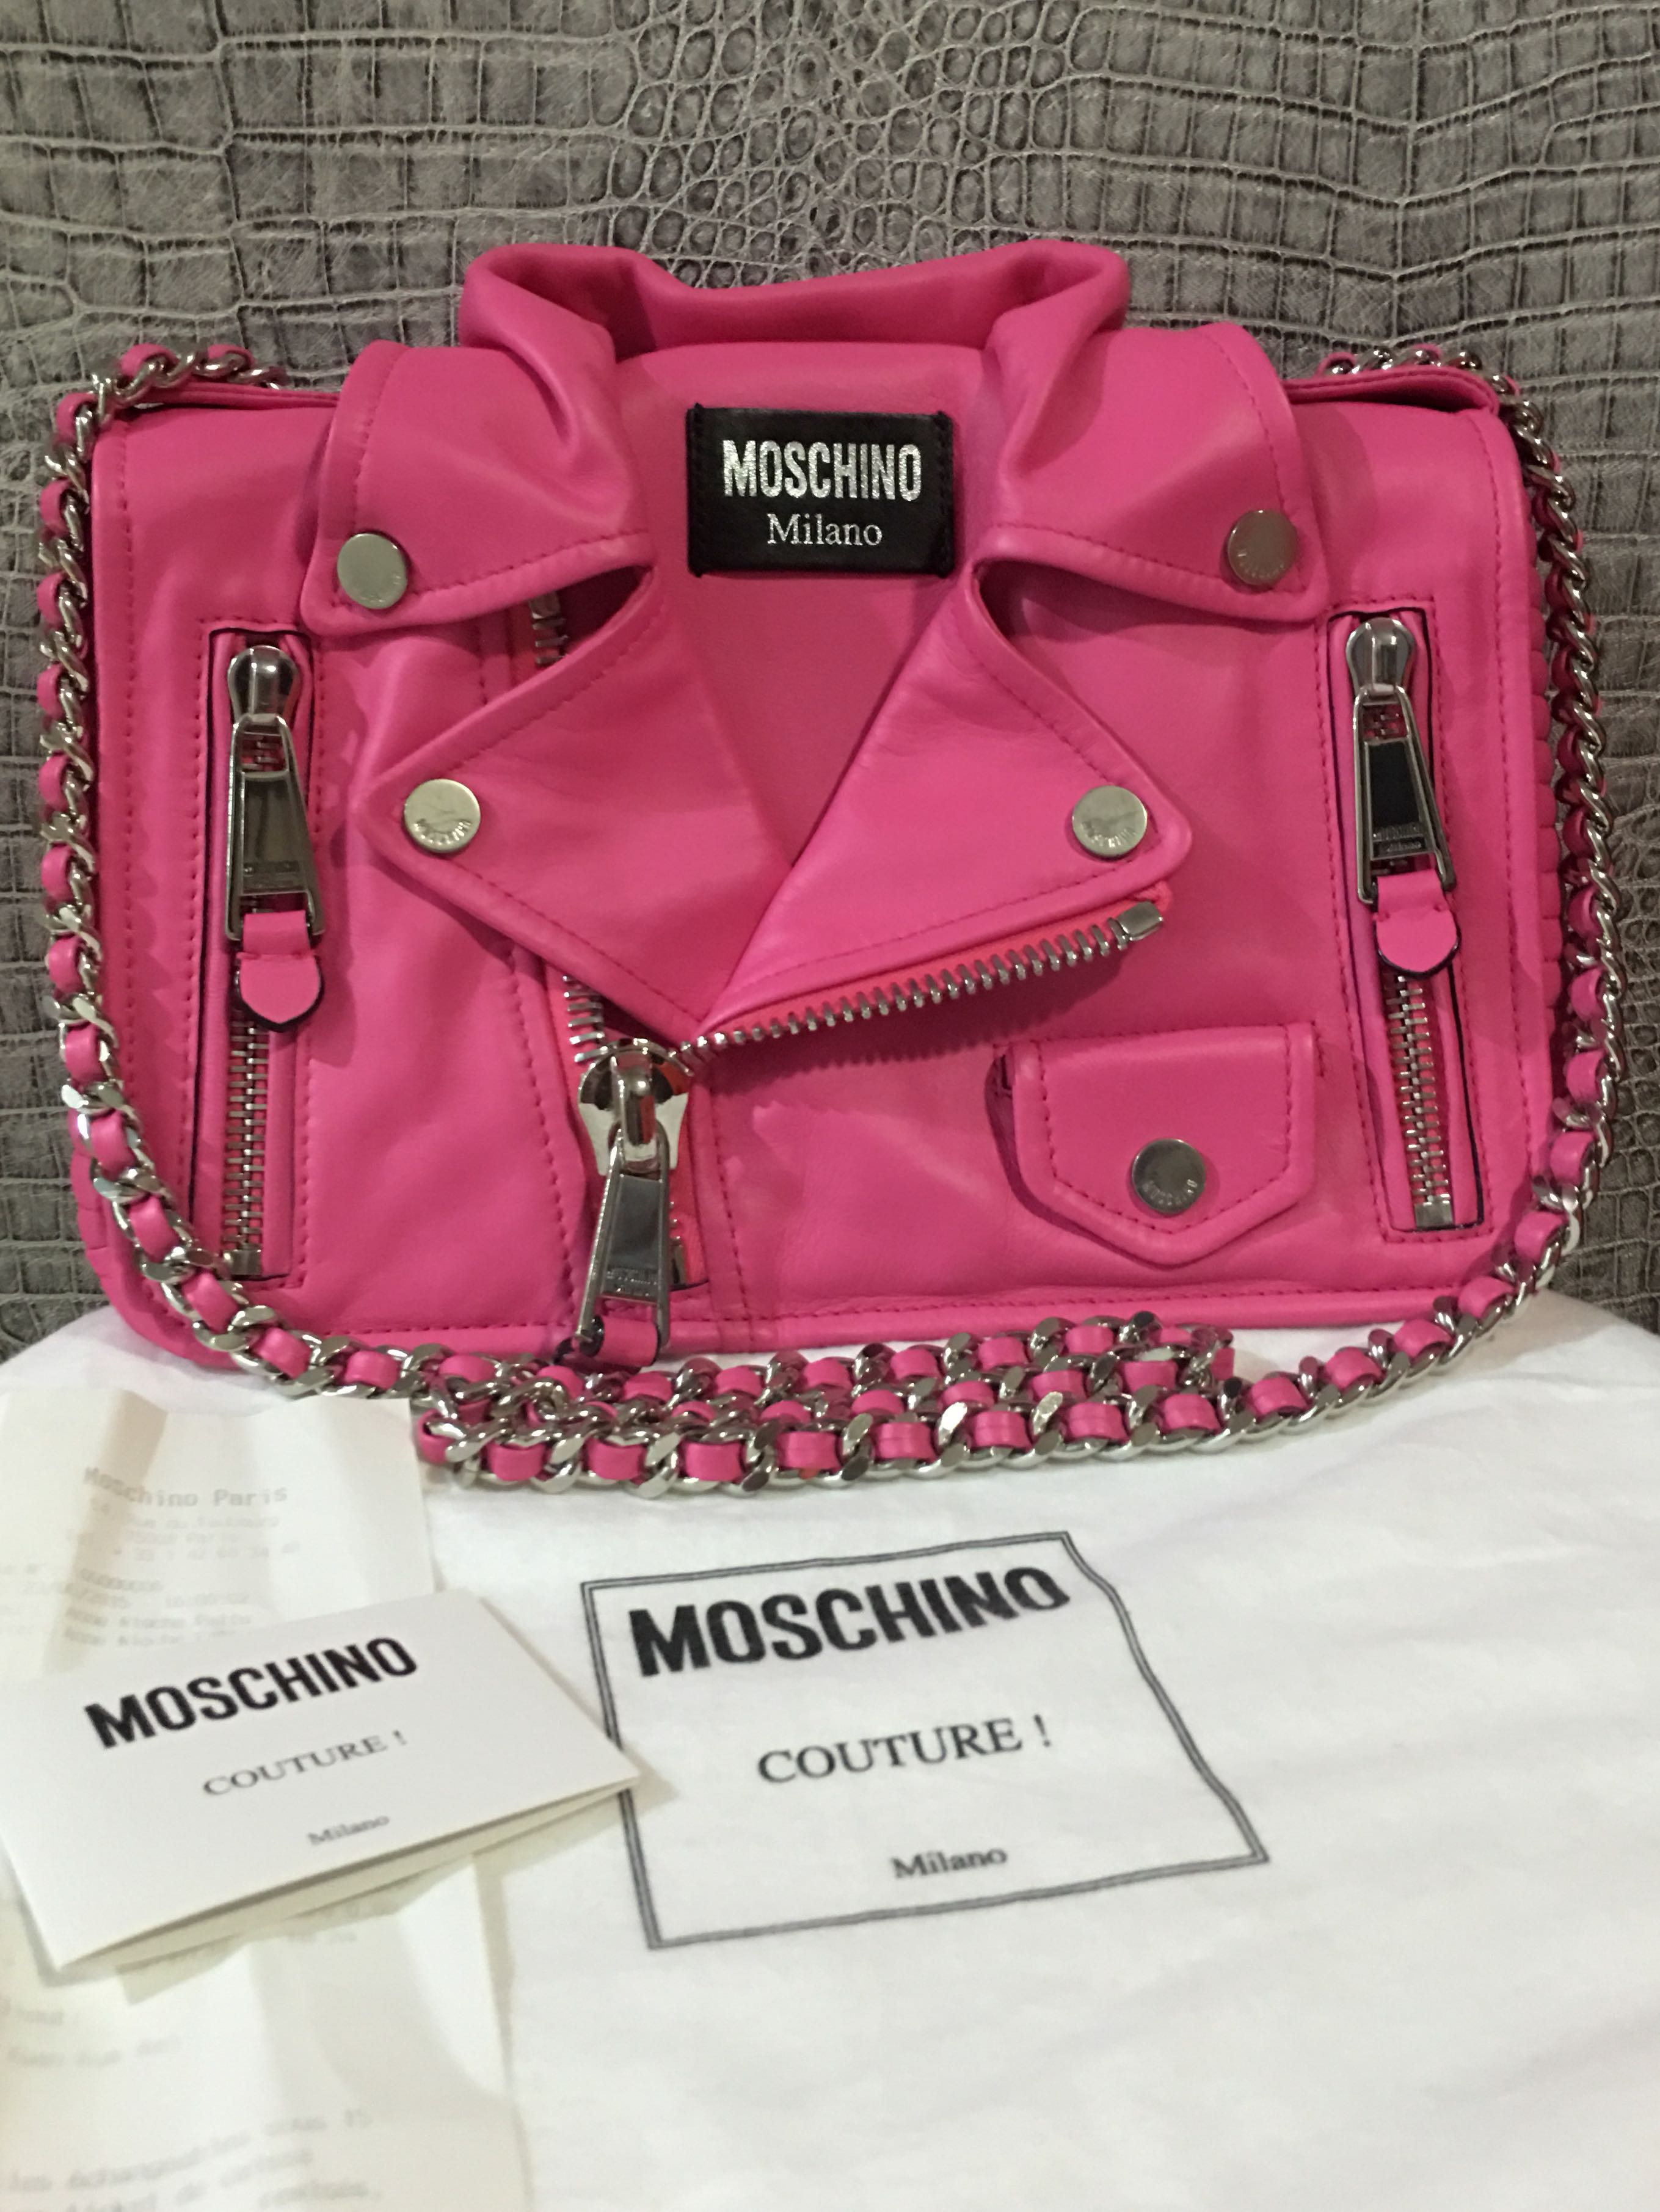 009e1604047 Moschino Biker Leather Shoulder Bag, Luxury, Bags & Wallets on Carousell